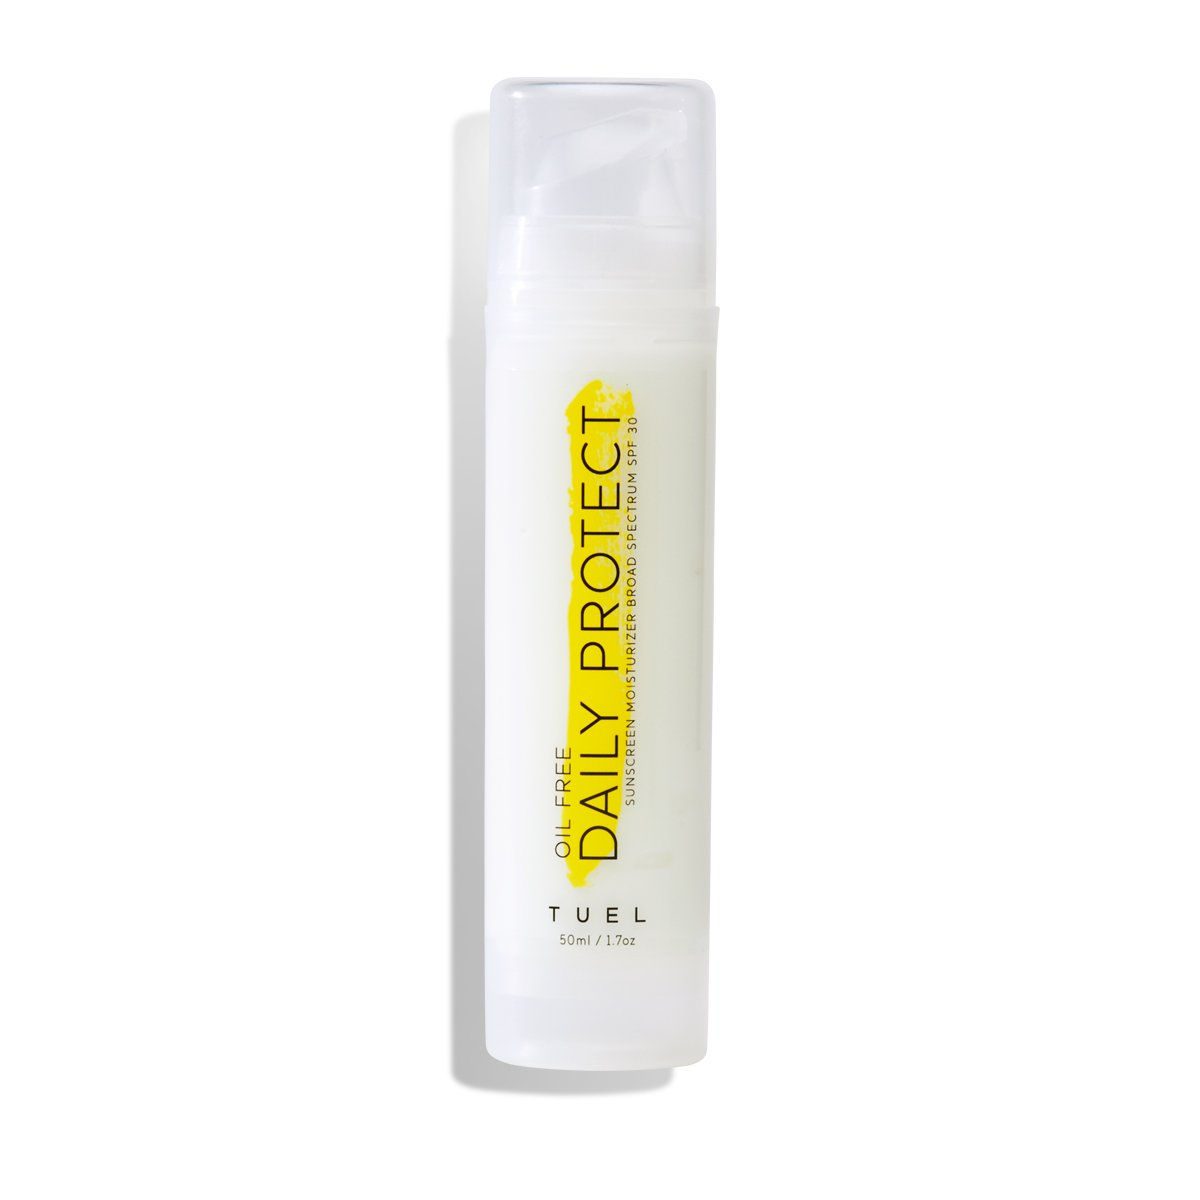 Daily Protect SPF 30 Daytime Moisturizer - Oil Free